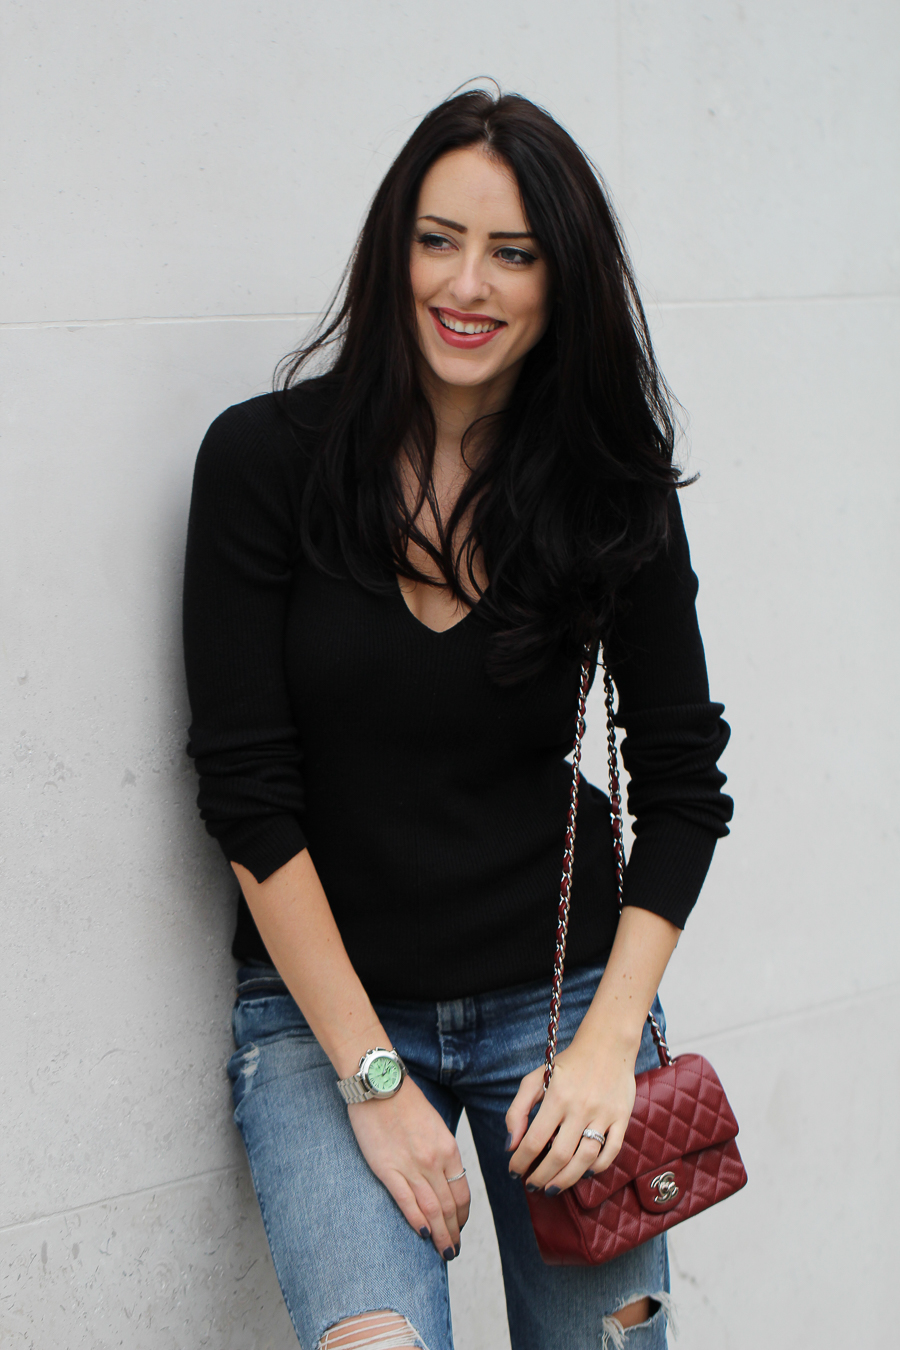 Sabrina Chakici - Clutch and Carry on - UK Style blog - street style london, folli follie watch, uk travel blogger-21